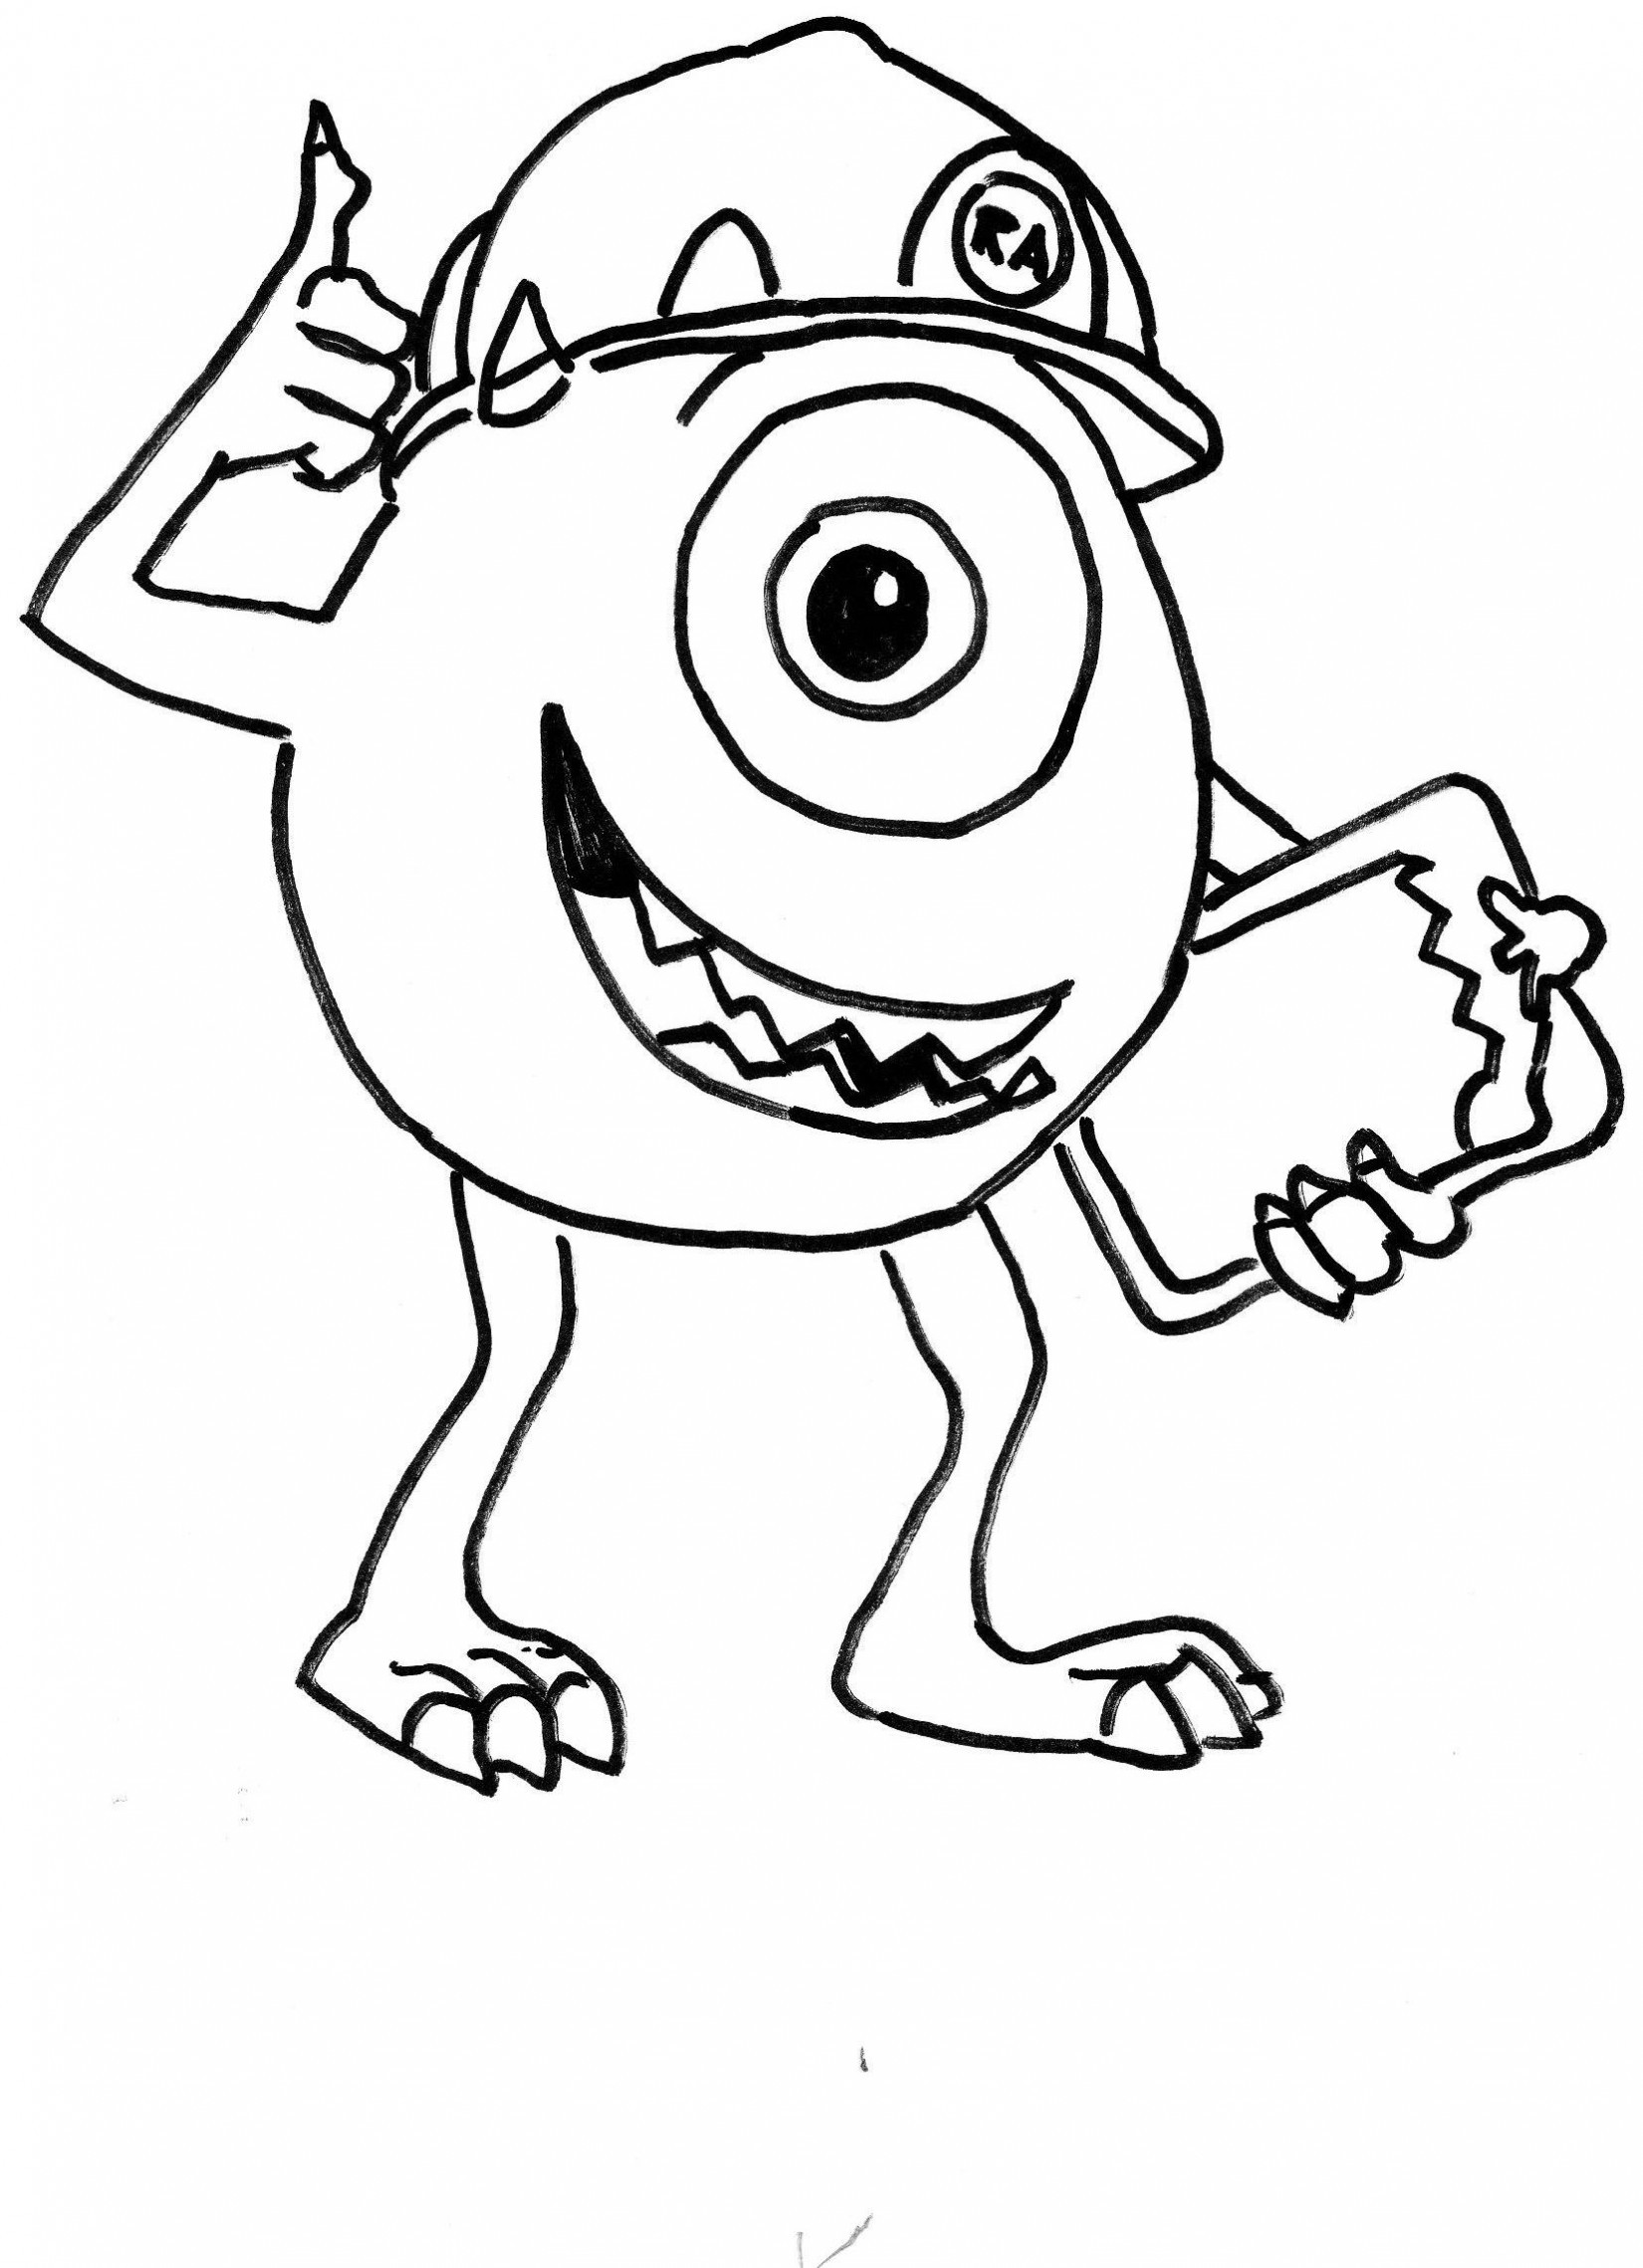 Co co coloring sheets free for kids - Cartoon Printable Coloring Pages For Toddlers Page Id 18065 Download Image Co Colouring In Free